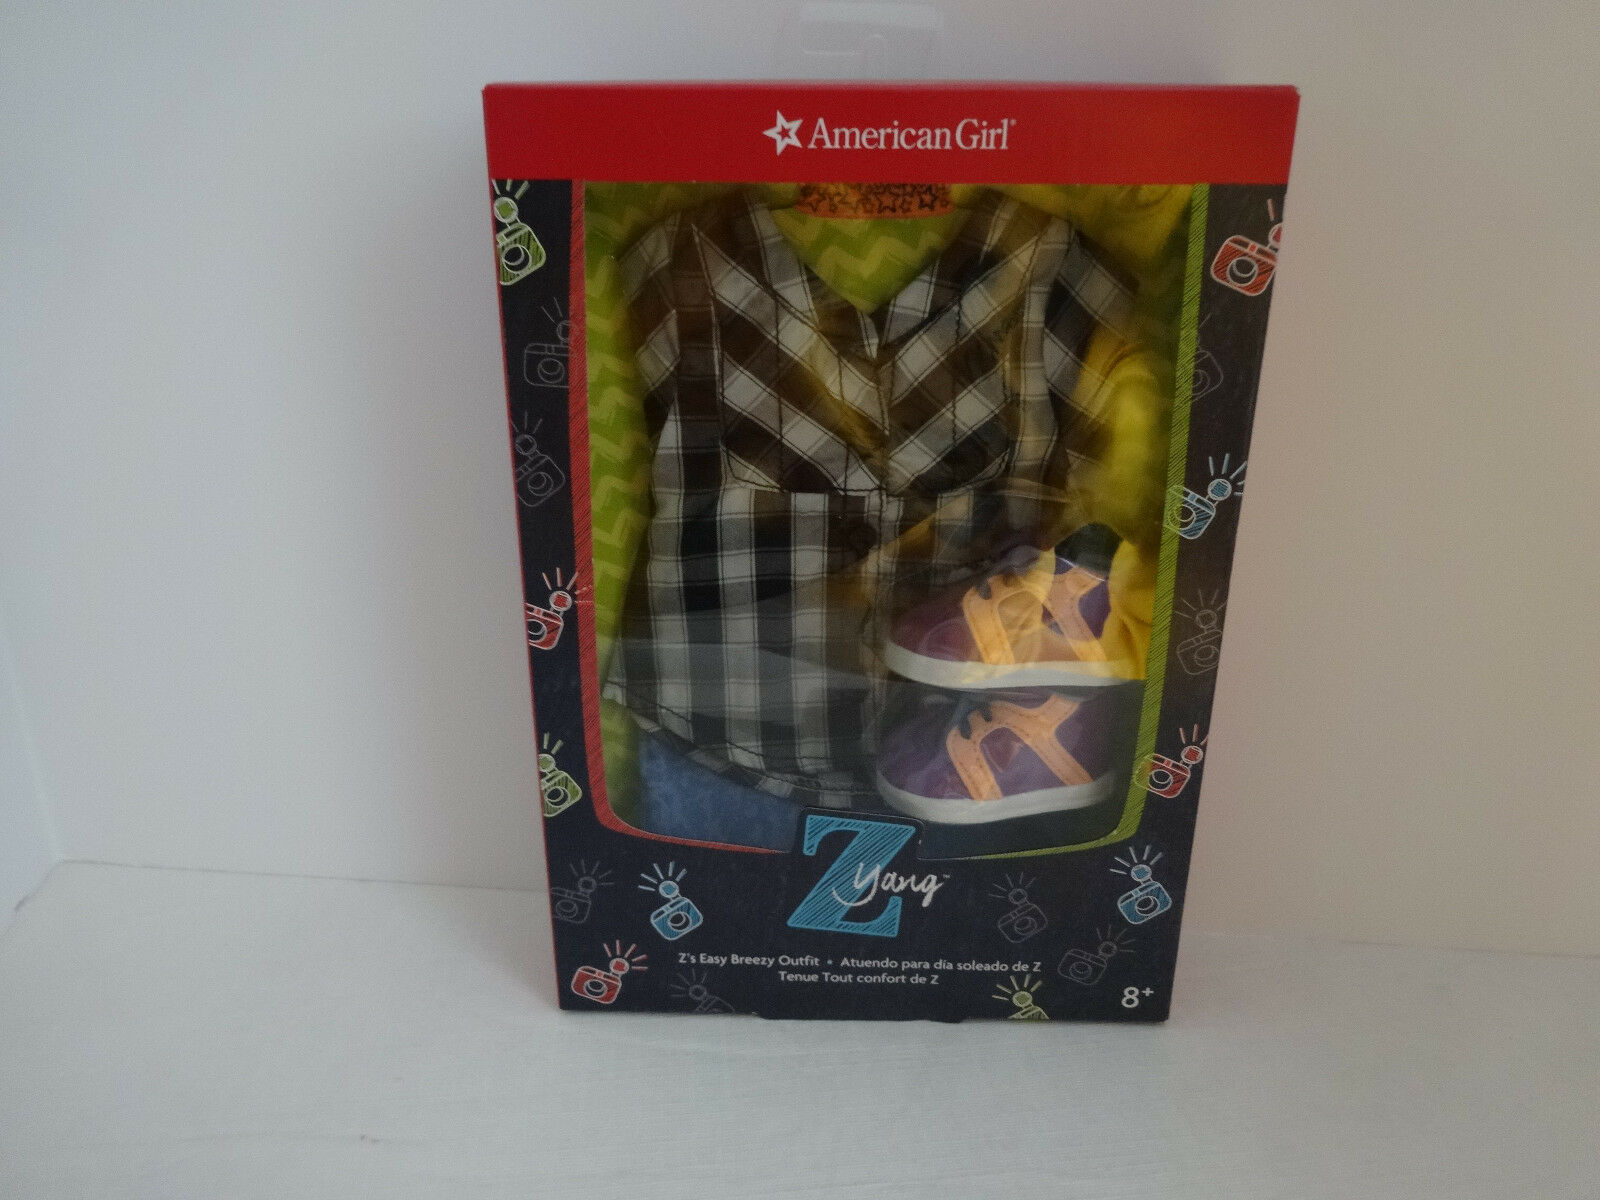 AMERICAN GIRL Z YANG EASY BREEZY OUTFIT - RETIRED - NEW -  IN ORIGINAL BOX